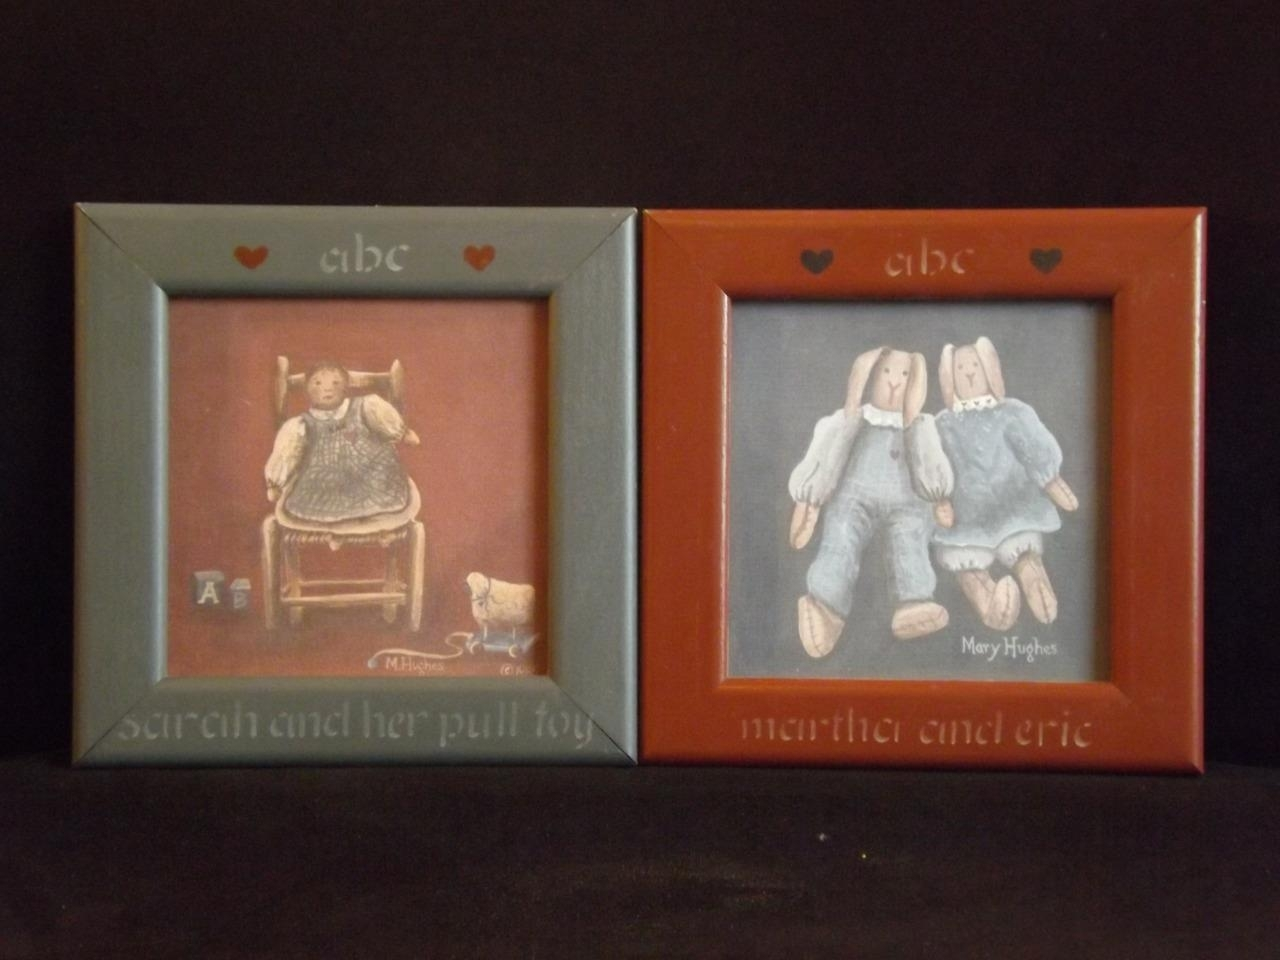 2 Mary Hughes Vintage Dolls Framed Folk Art Prints 10X10 Within Current Framed Folk Art Prints (View 2 of 15)